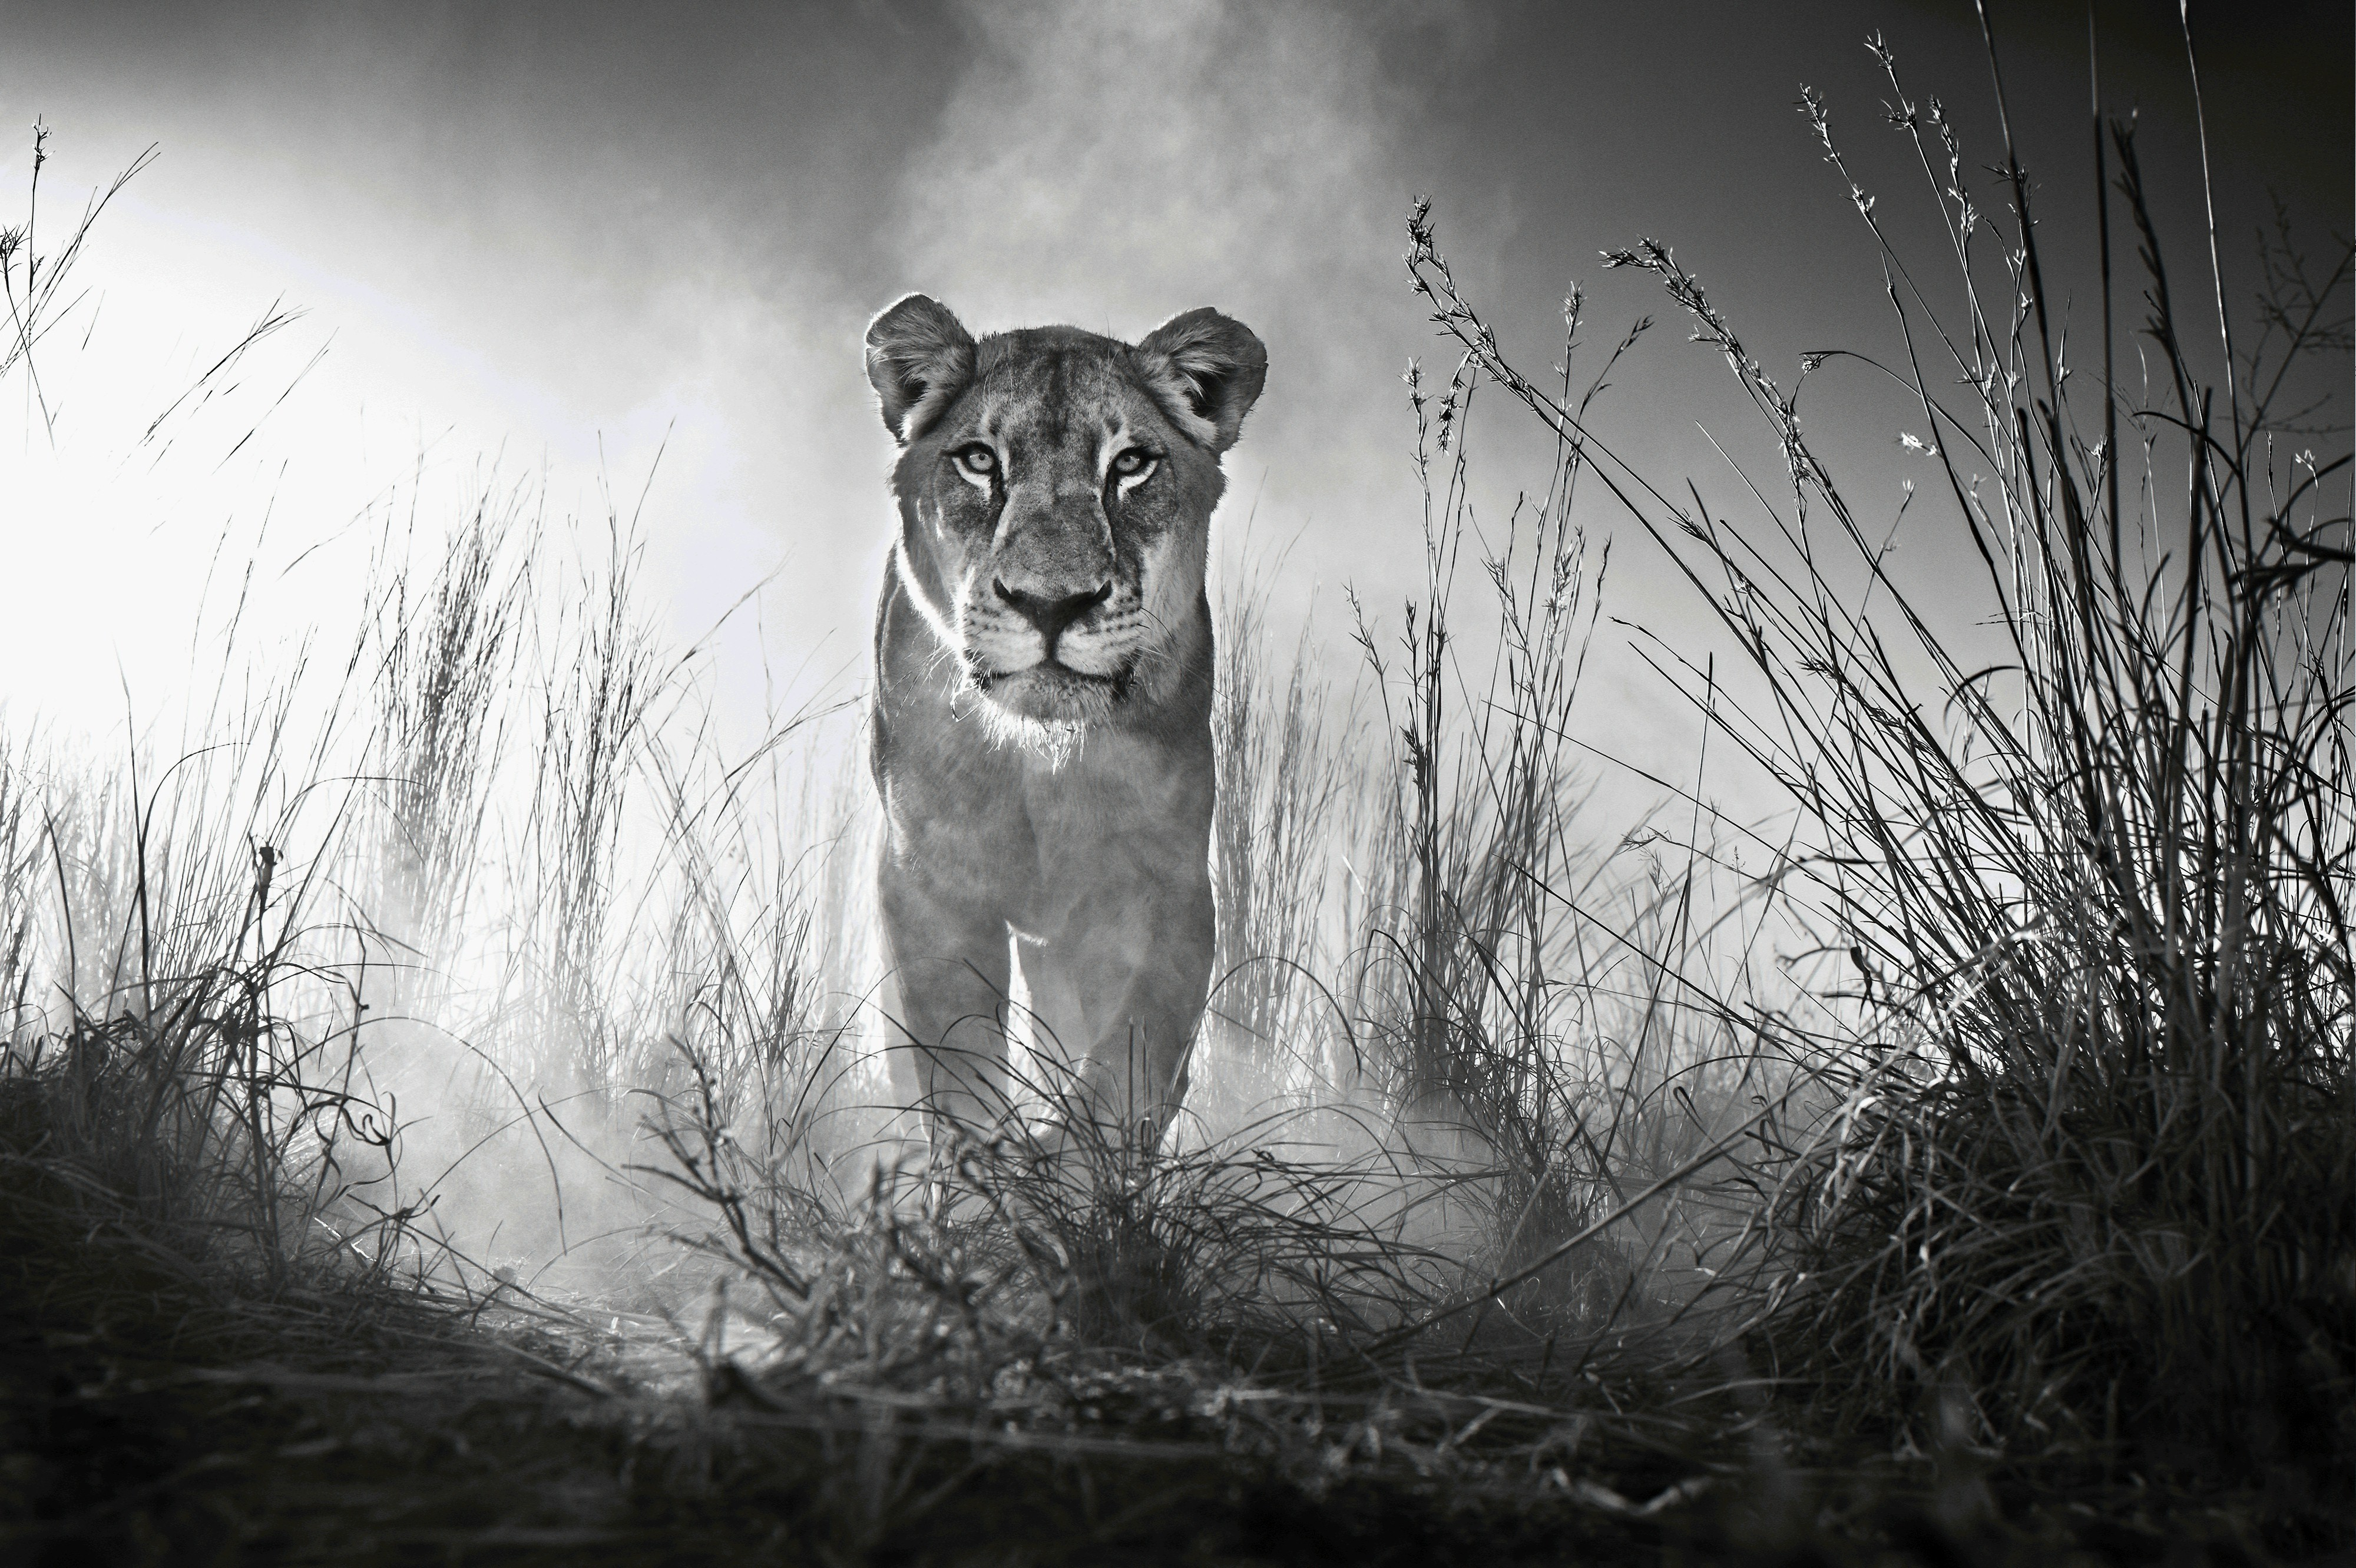 3840x2160 Lion Black And White 4k Wallpaper Hd Animals 4k Wallpapers Images Photos And Background